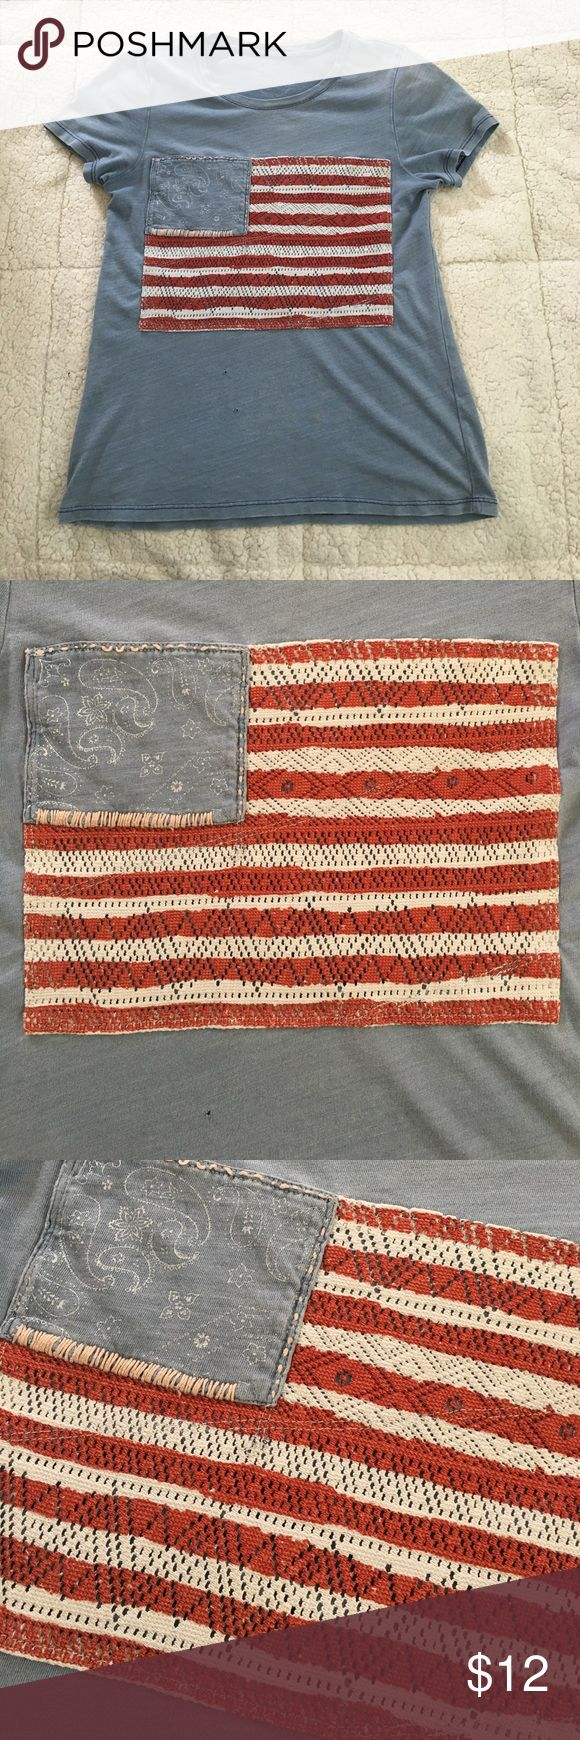 Lucky Brand Los Angeles CA Small American Flag Lucky Brand T-Shirt. Has some small holes/rips. But still in good condition. Perfect for the 4th of July! Follow me. I post everyday! :) Lucky Brand Tops Tees - Short Sleeve